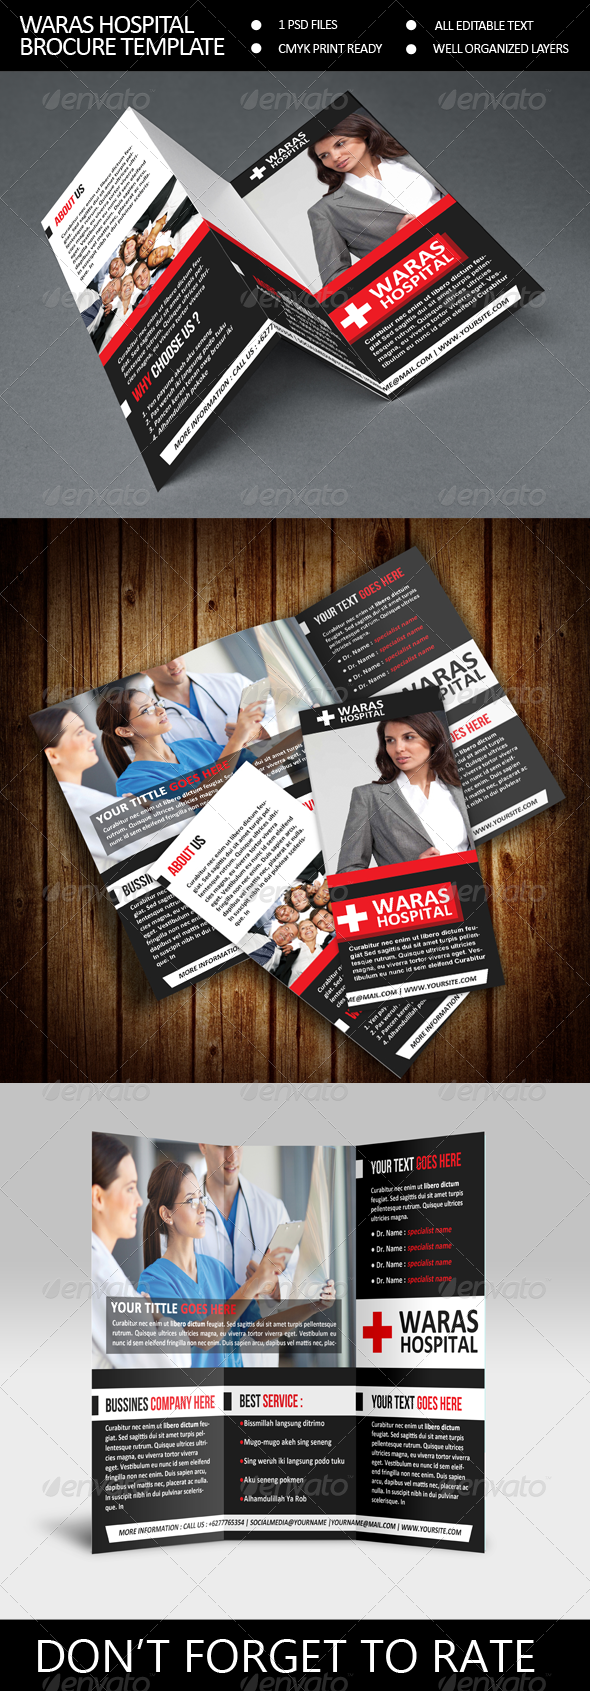 GraphicRiver Waras Hospital Trifold Brocure Template 7905731